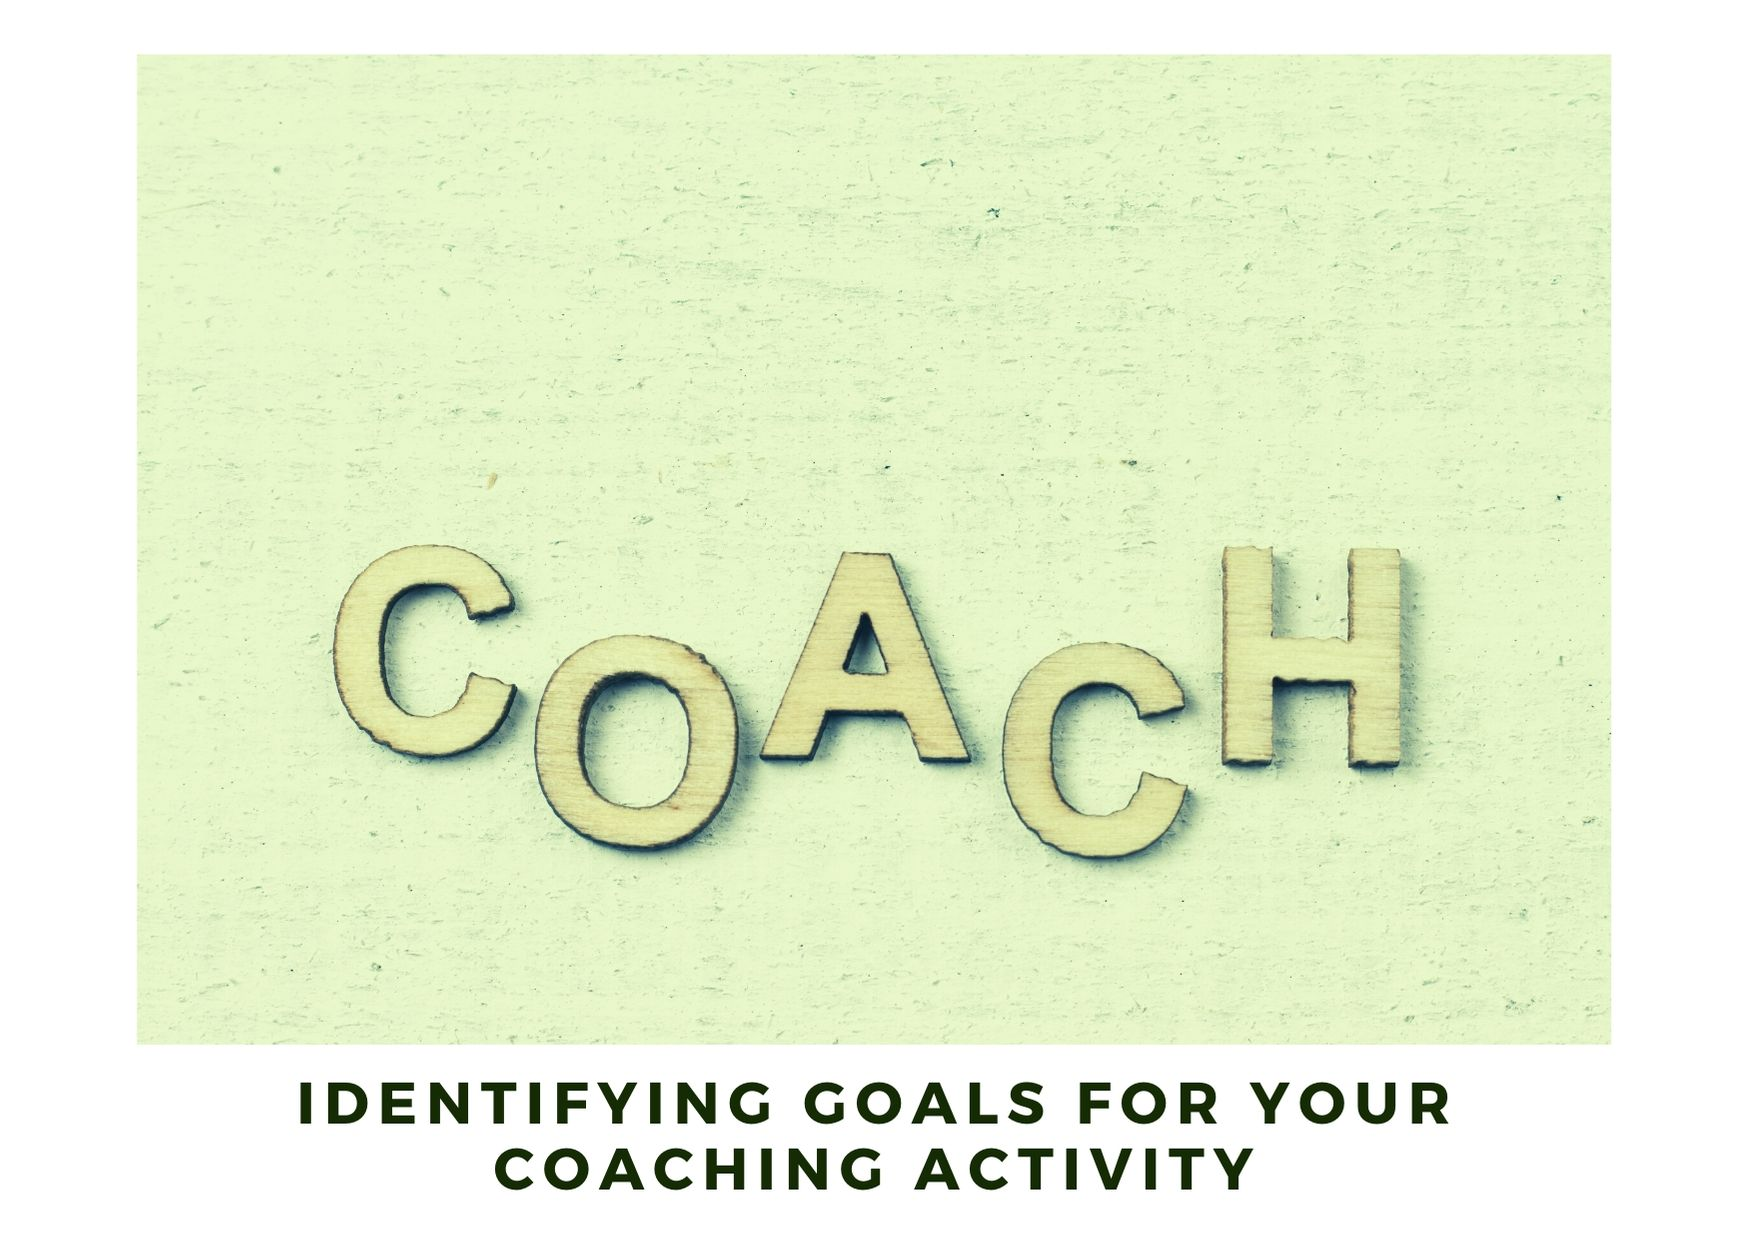 Identifying goals for your coaching activity